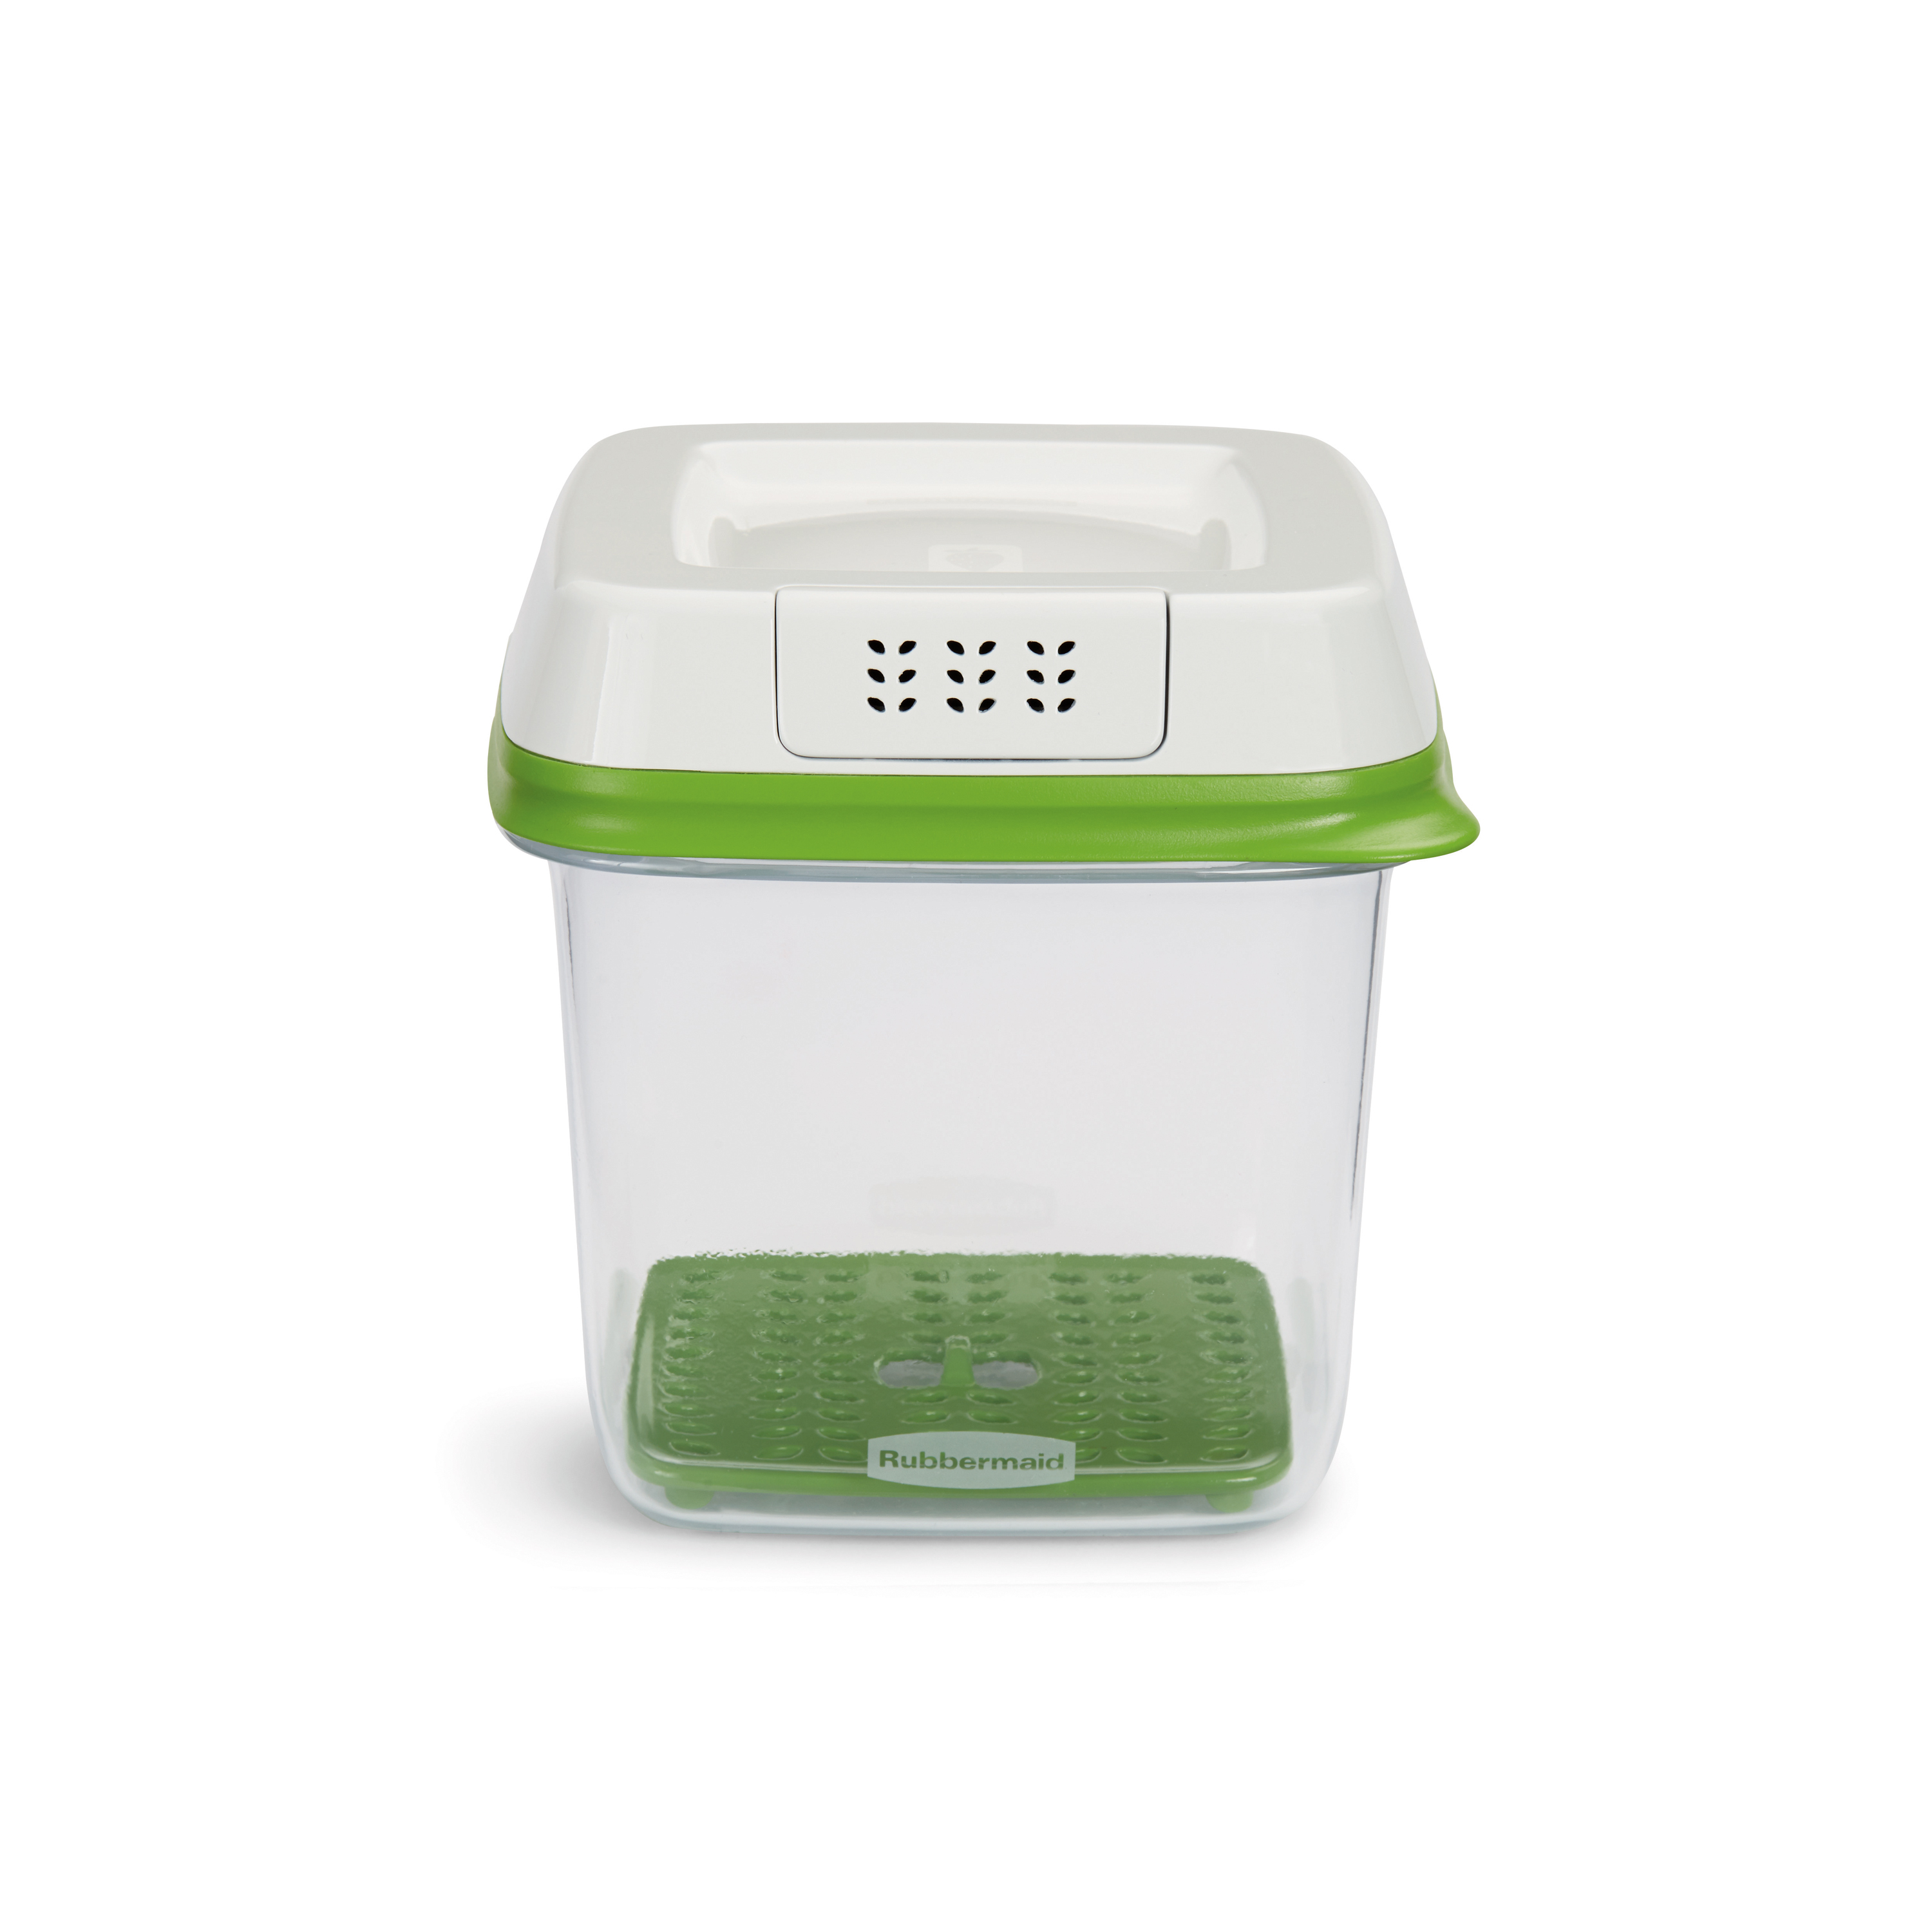 Rubbermaid FreshWorks 6.3-Cup Medium Produce Saver, Green